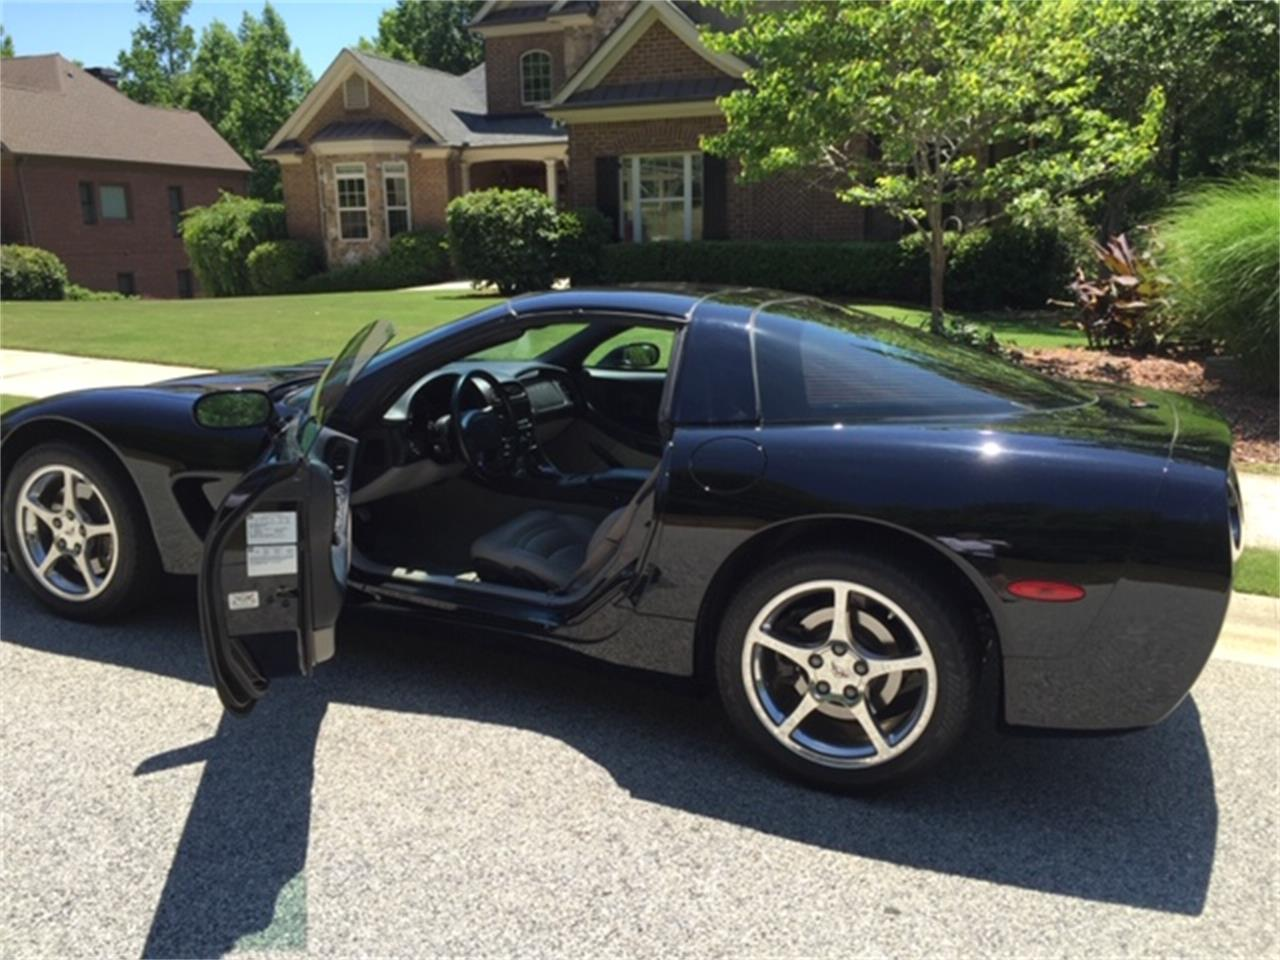 Large Picture of '02 Chevrolet Corvette Offered by a Private Seller - PFIC